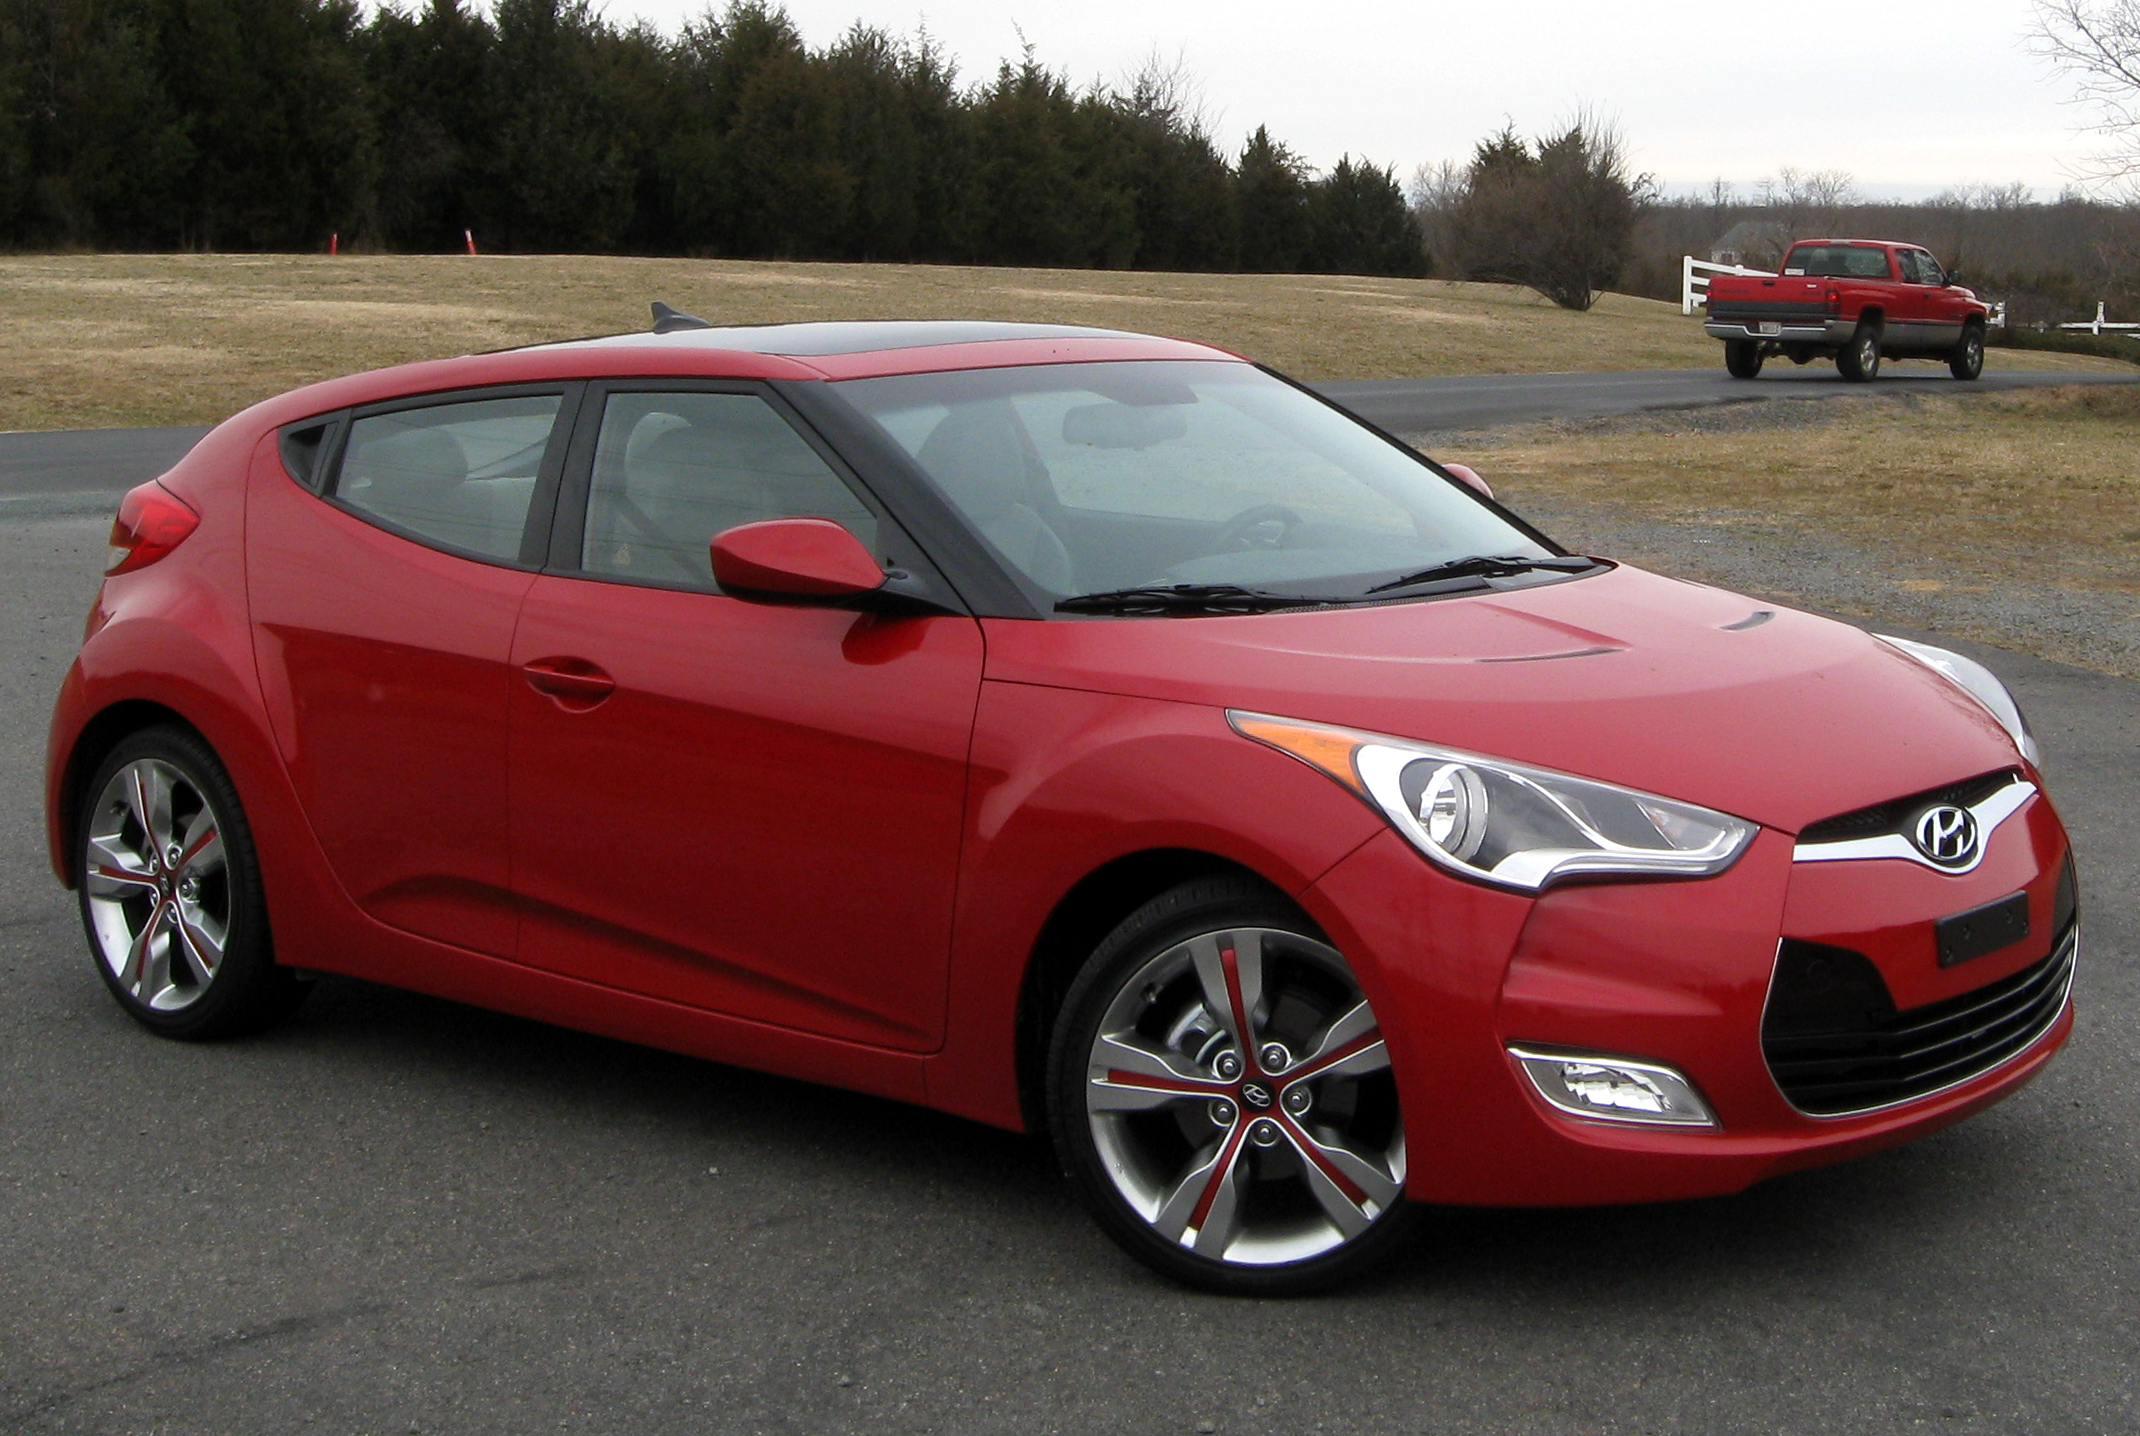 2012 Hyundai Veloster Review, Ratings, Specs, Prices, and ...  |2012 Hyundai Veloster